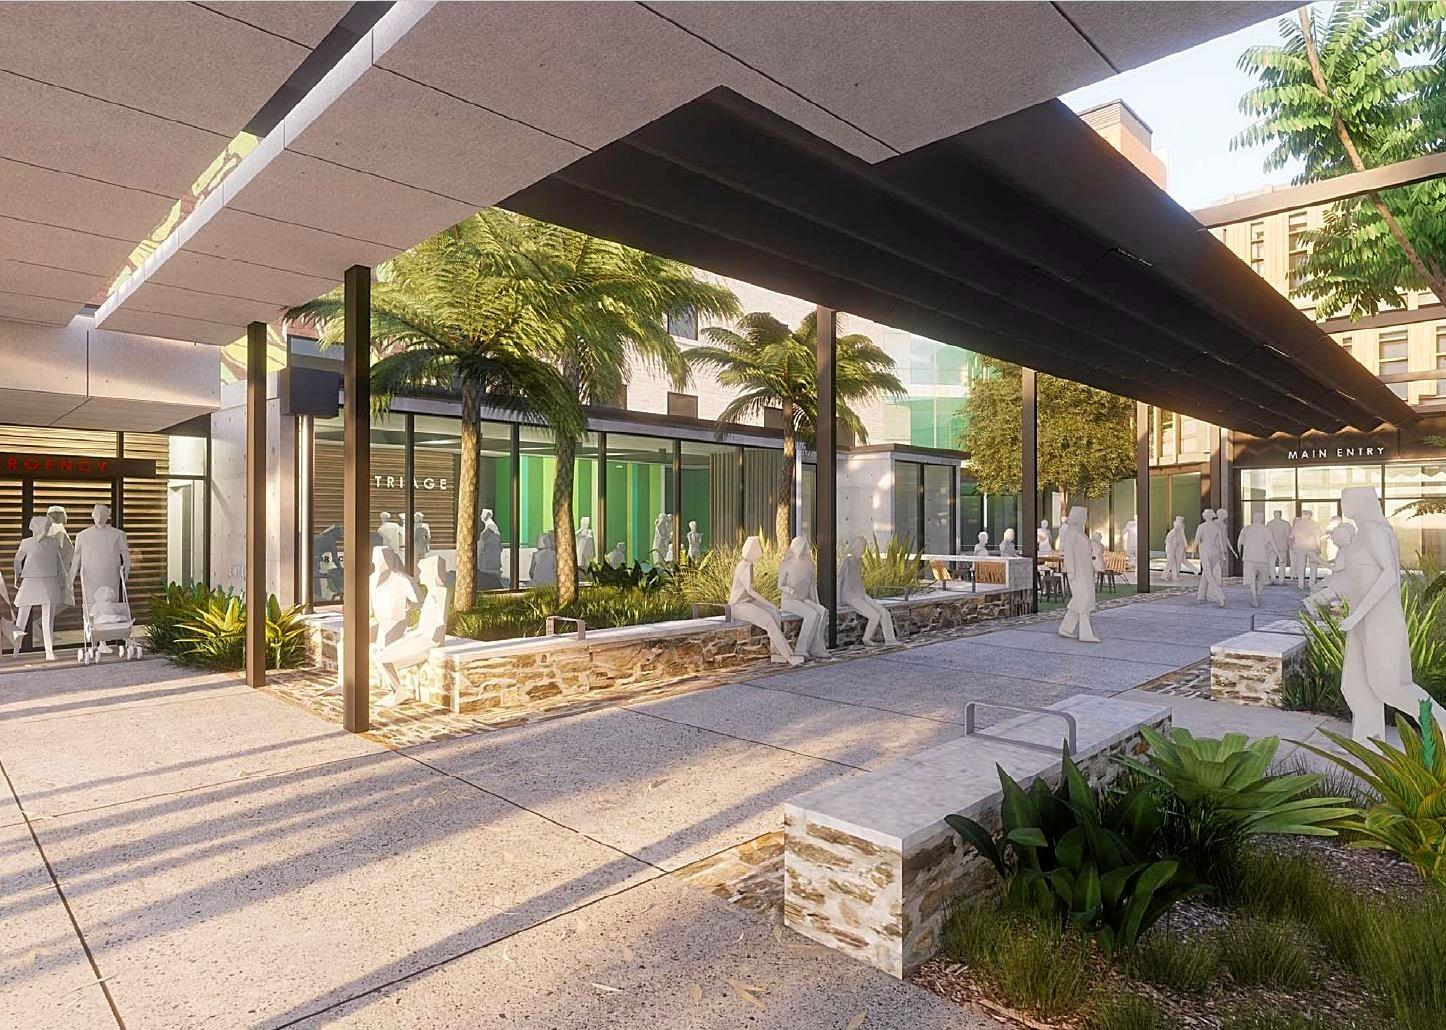 Artist's render of the Nambour Hospital courtyard after the redevelopment.